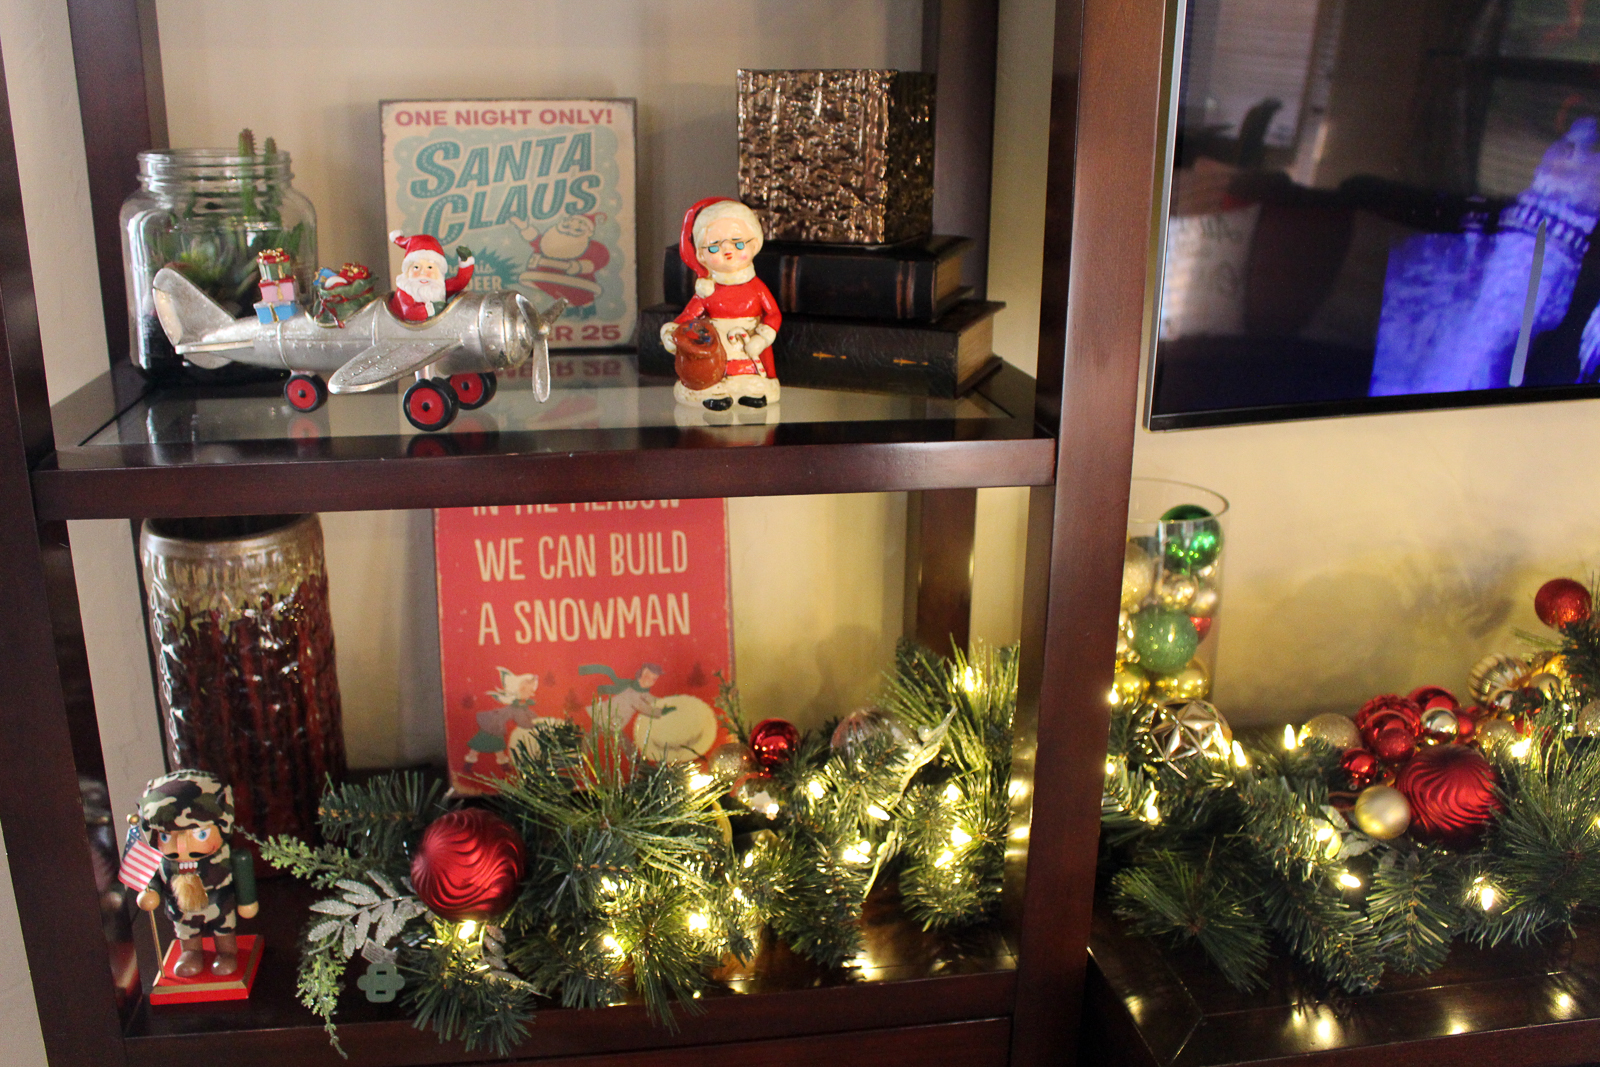 Holiday decorations on an entertainment center, including vintage Santa figurines and an illuminated garland